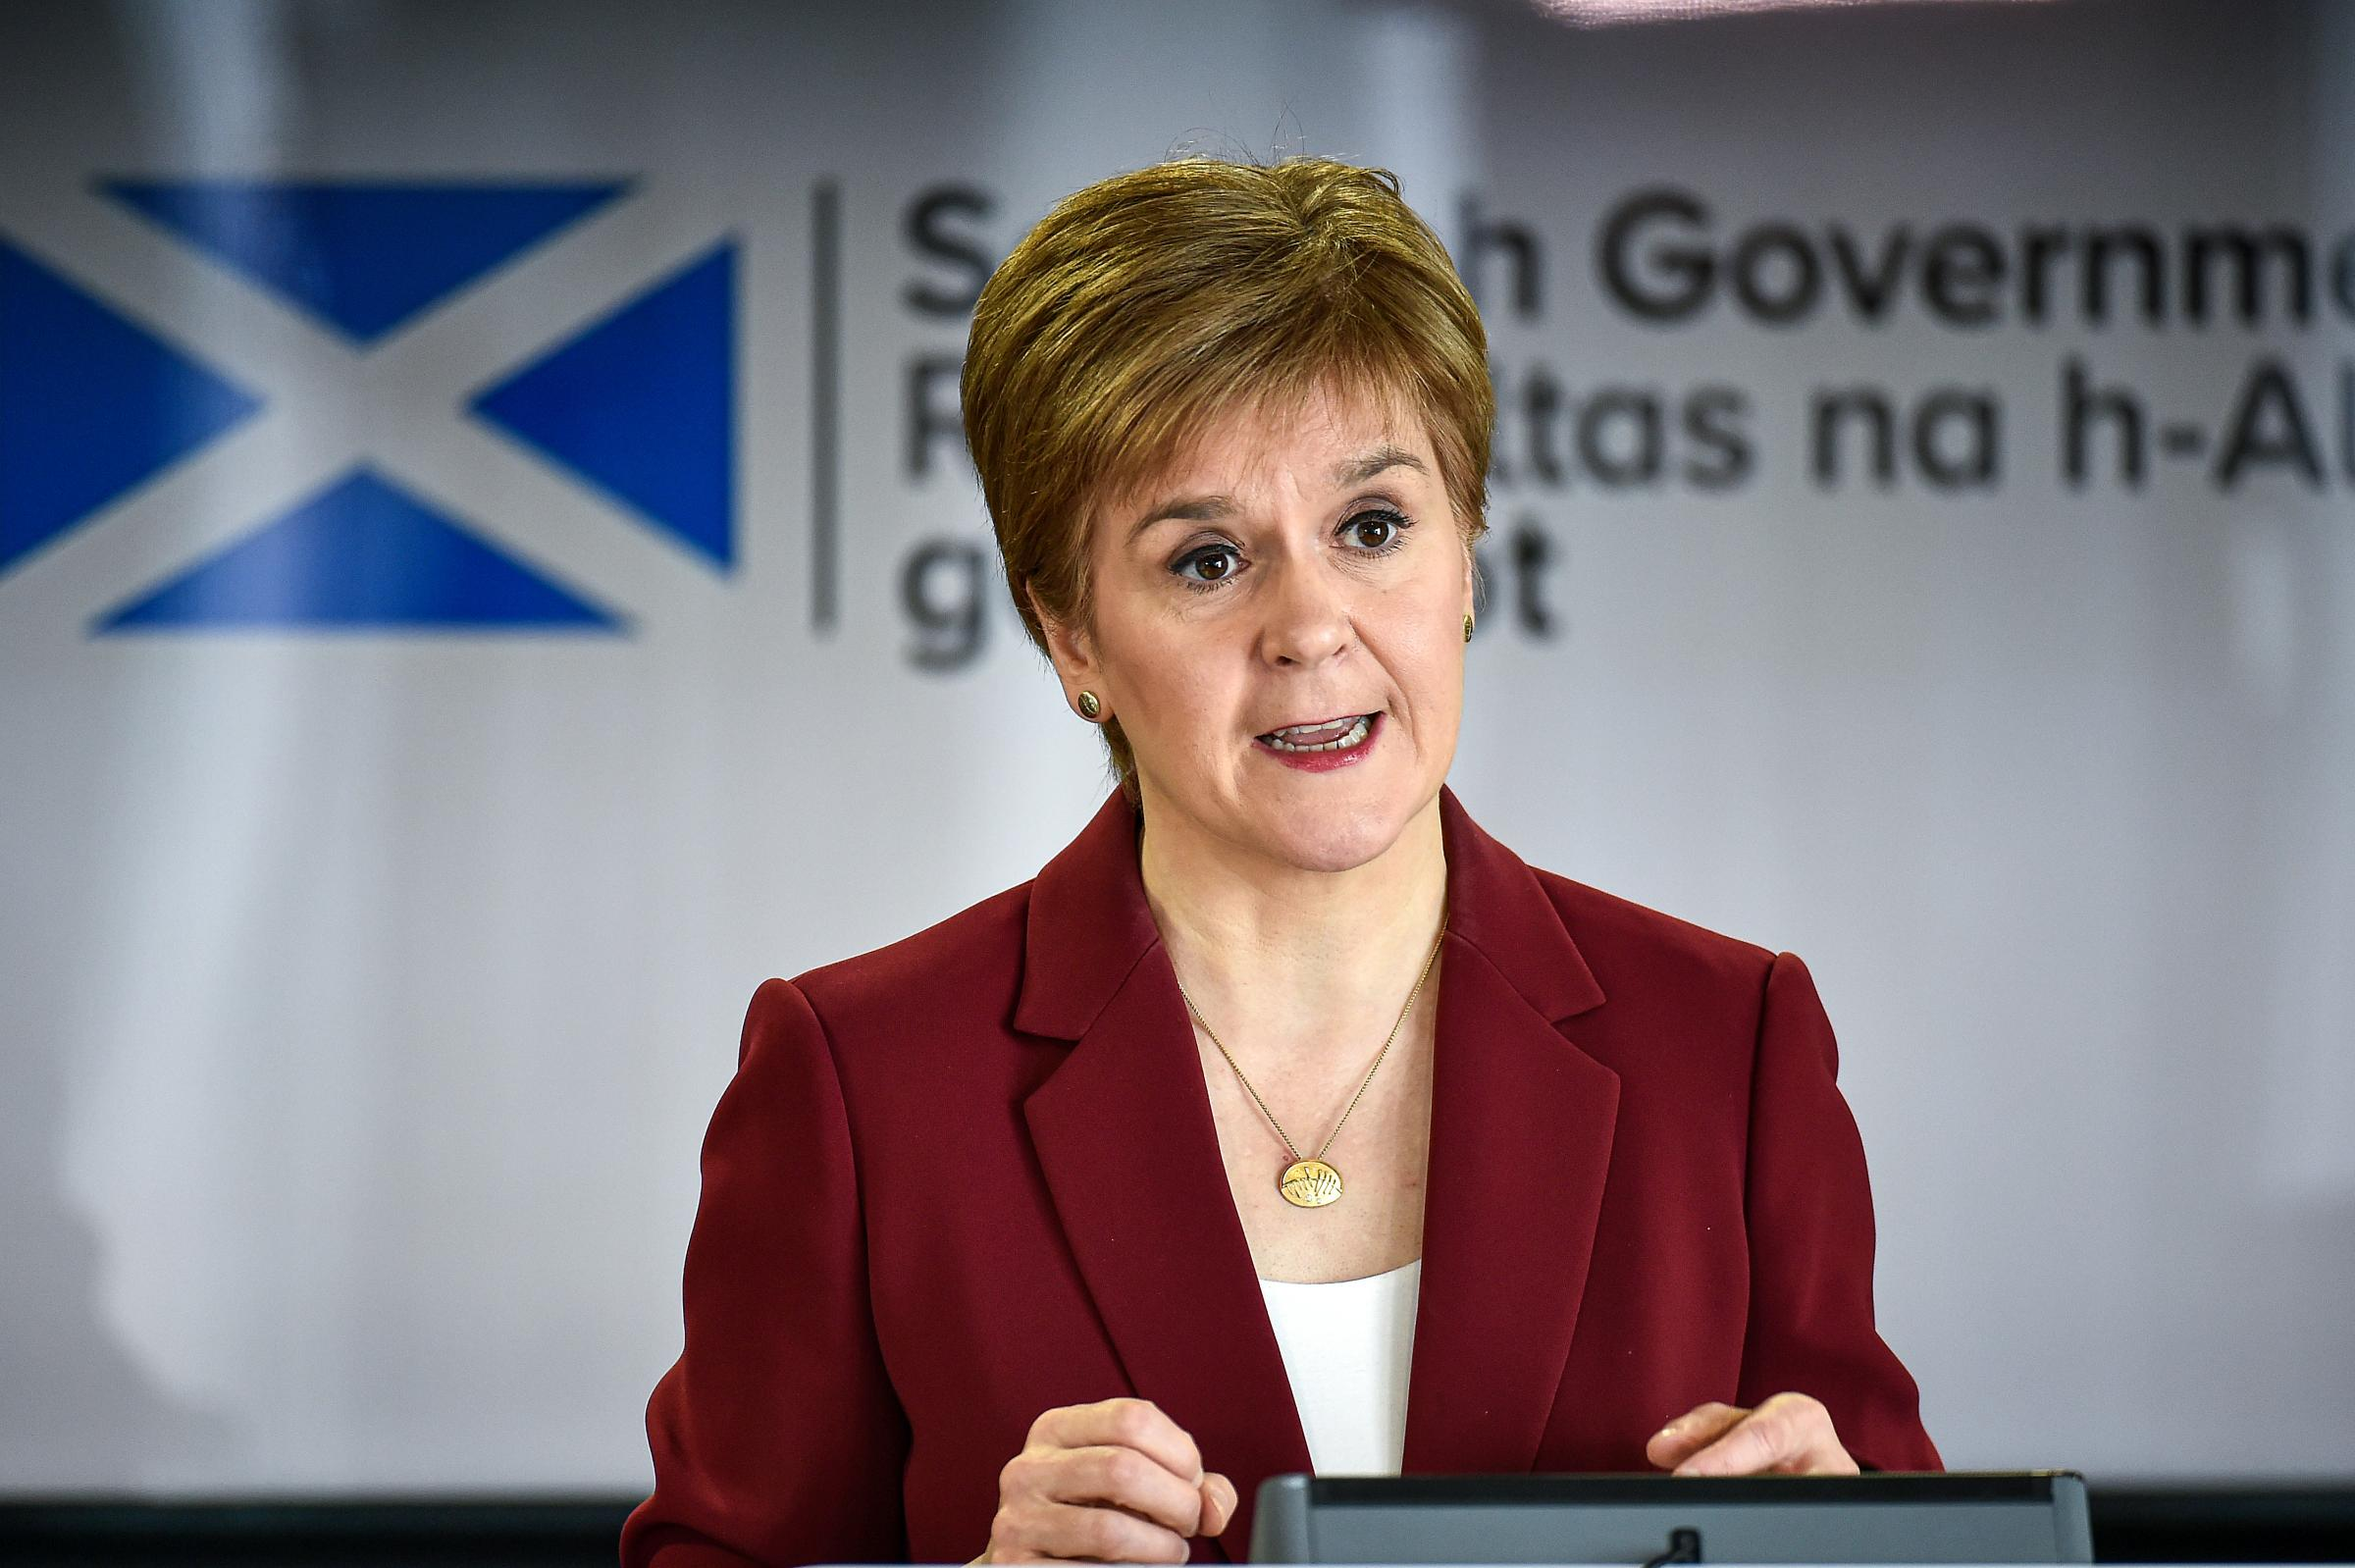 Nicola Sturgeon Covid update: What did First Minister say?